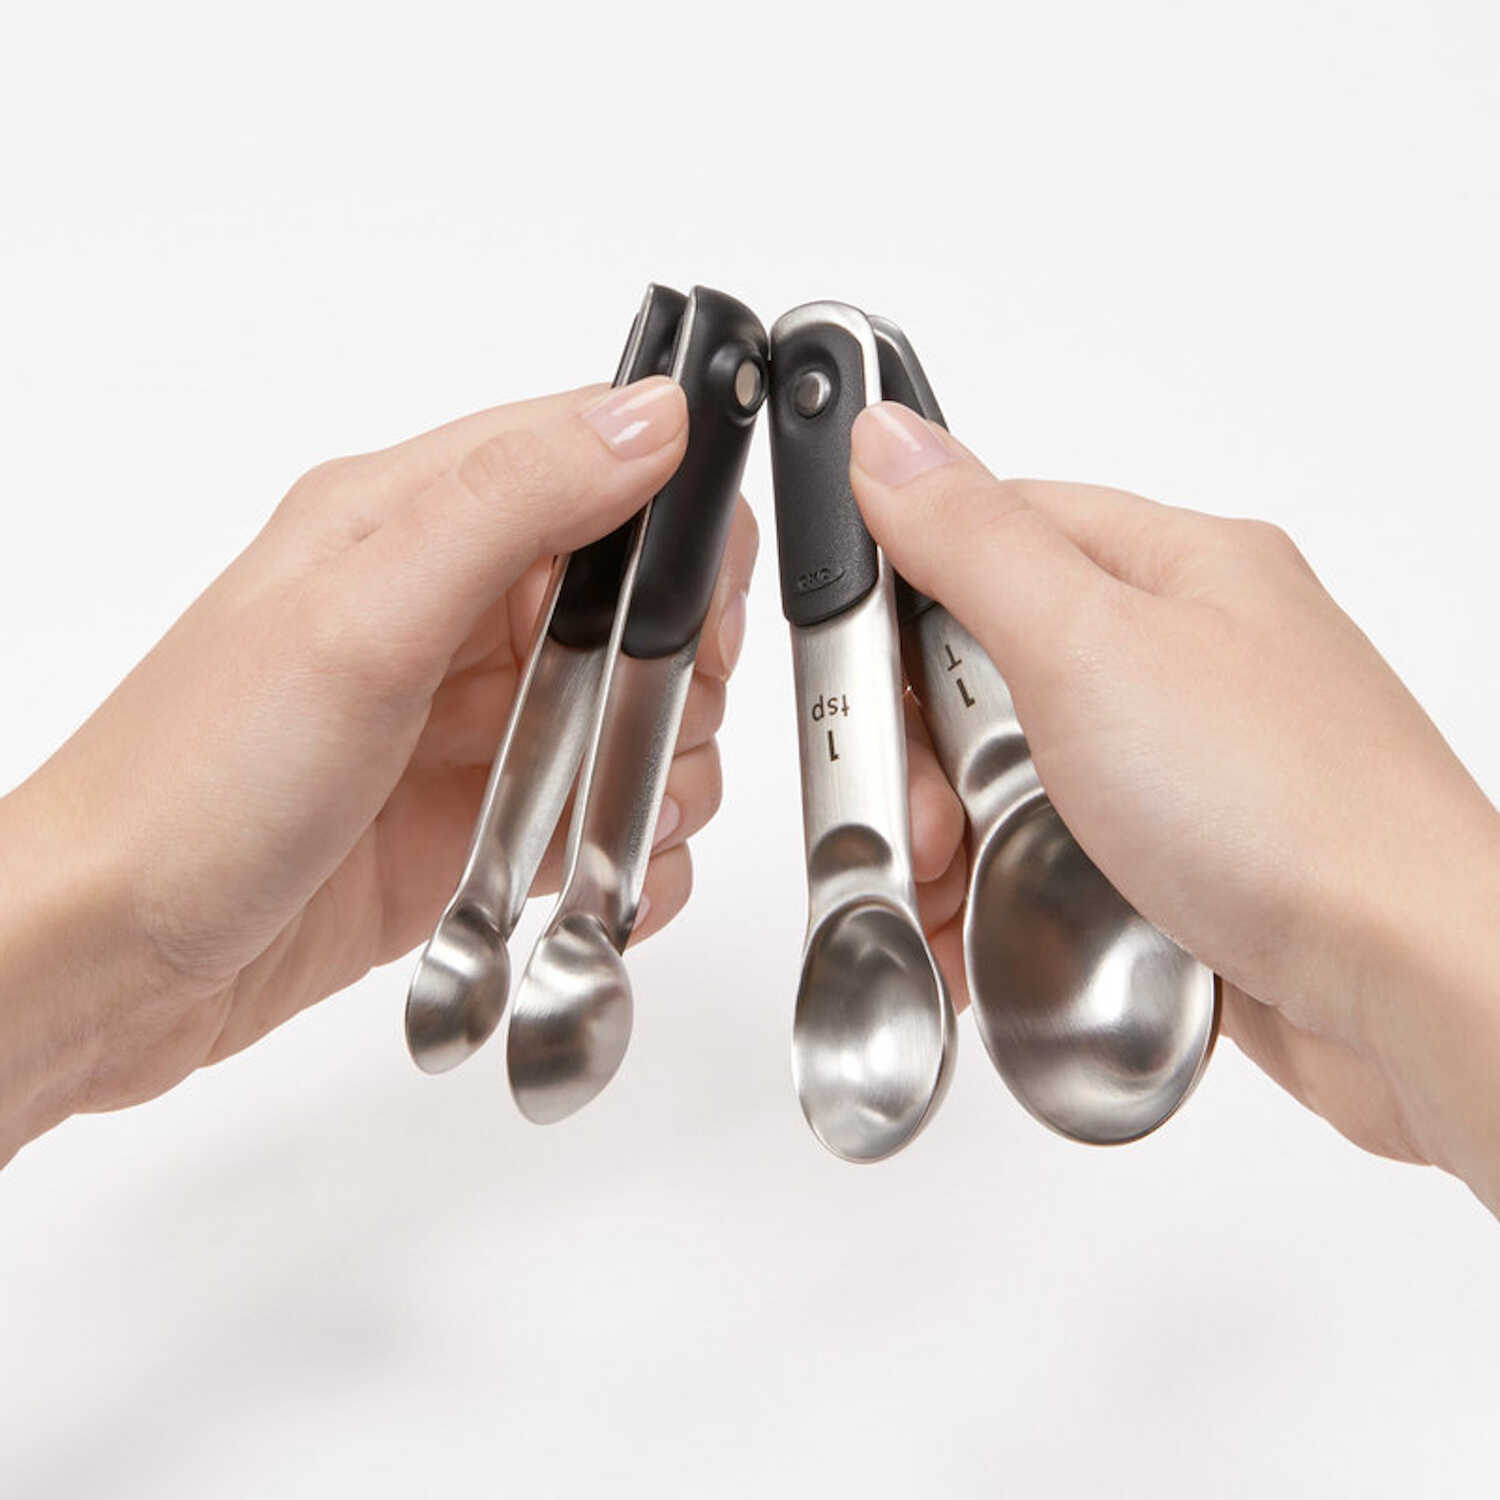 OXO  Good Grips  Stainless Steel  Silver  Measuring Spoon